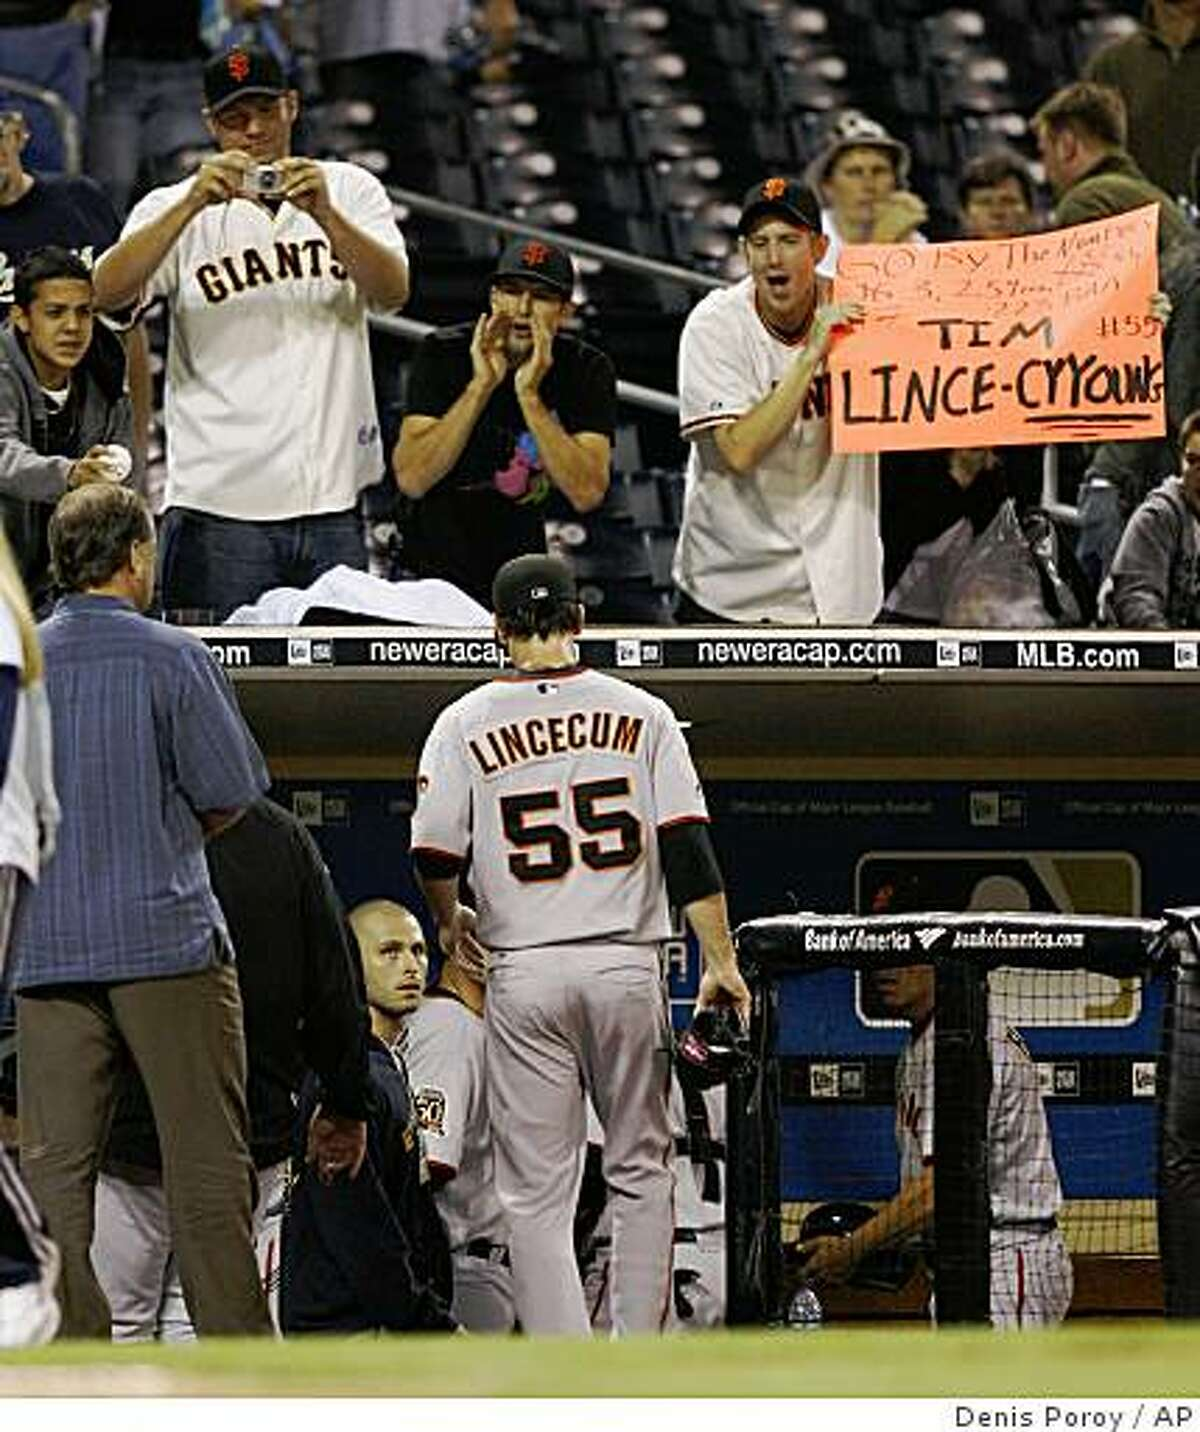 Giants fans cheer for San Francisco Giants pitcher Tim Lincecum as he leaves the field after the final out of a baseball game against the San Diego Padres on Saturday, Sept. 13, 2008 in San Diego. Lincecum pitched a complete game shut-out in the Giants 7-0 win. (AP Photo/Denis Poroy)